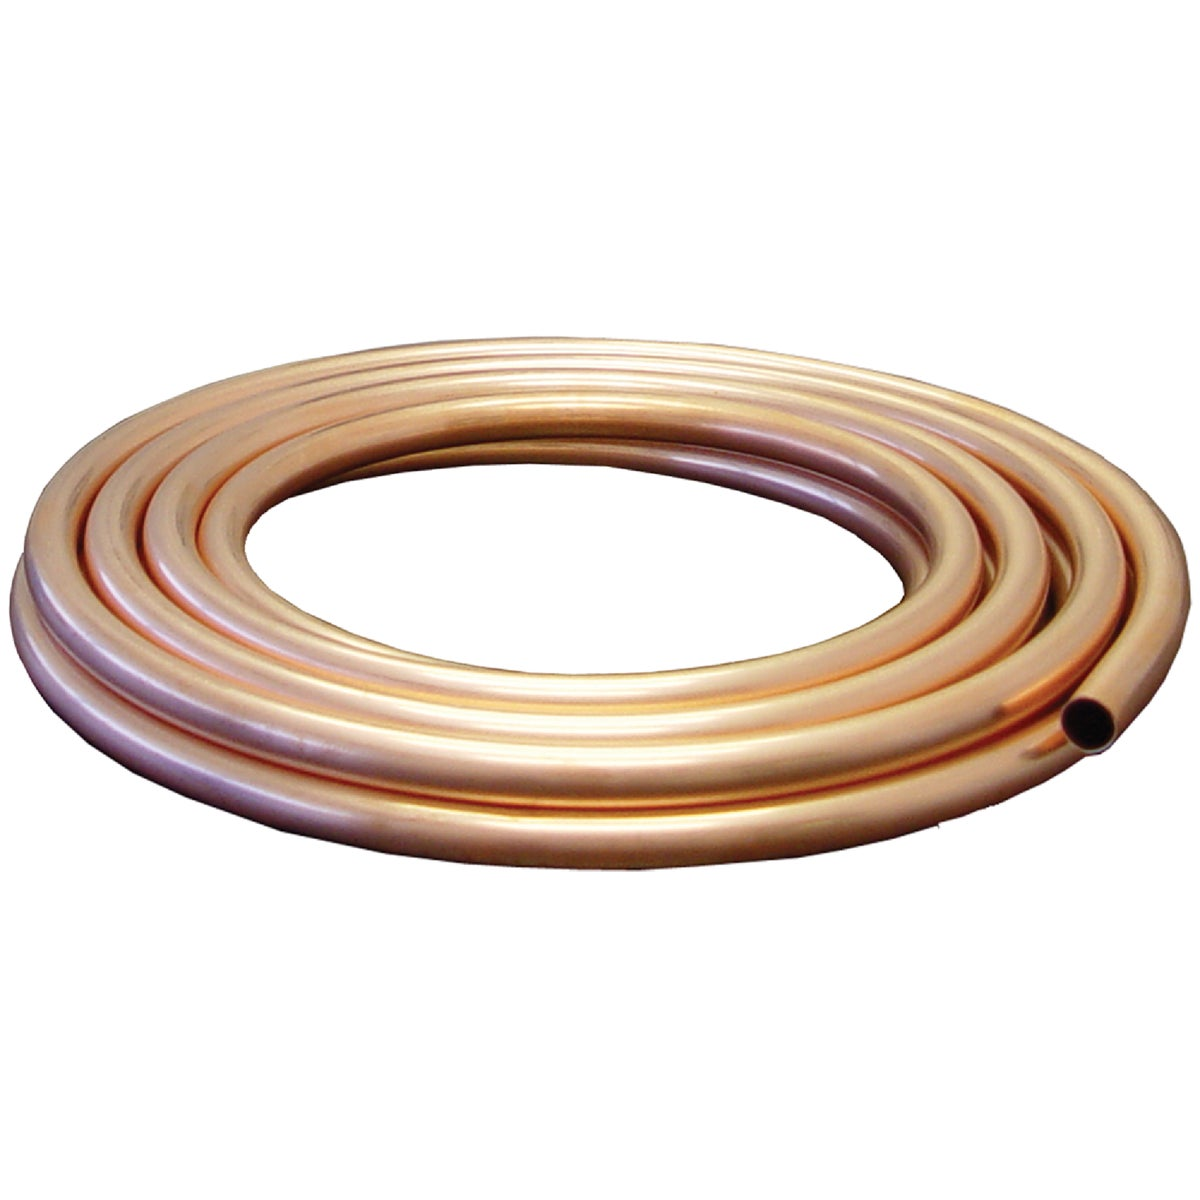 "5/8""ODX20'UG COPPER COIL - UT10020 by Mueller B K"